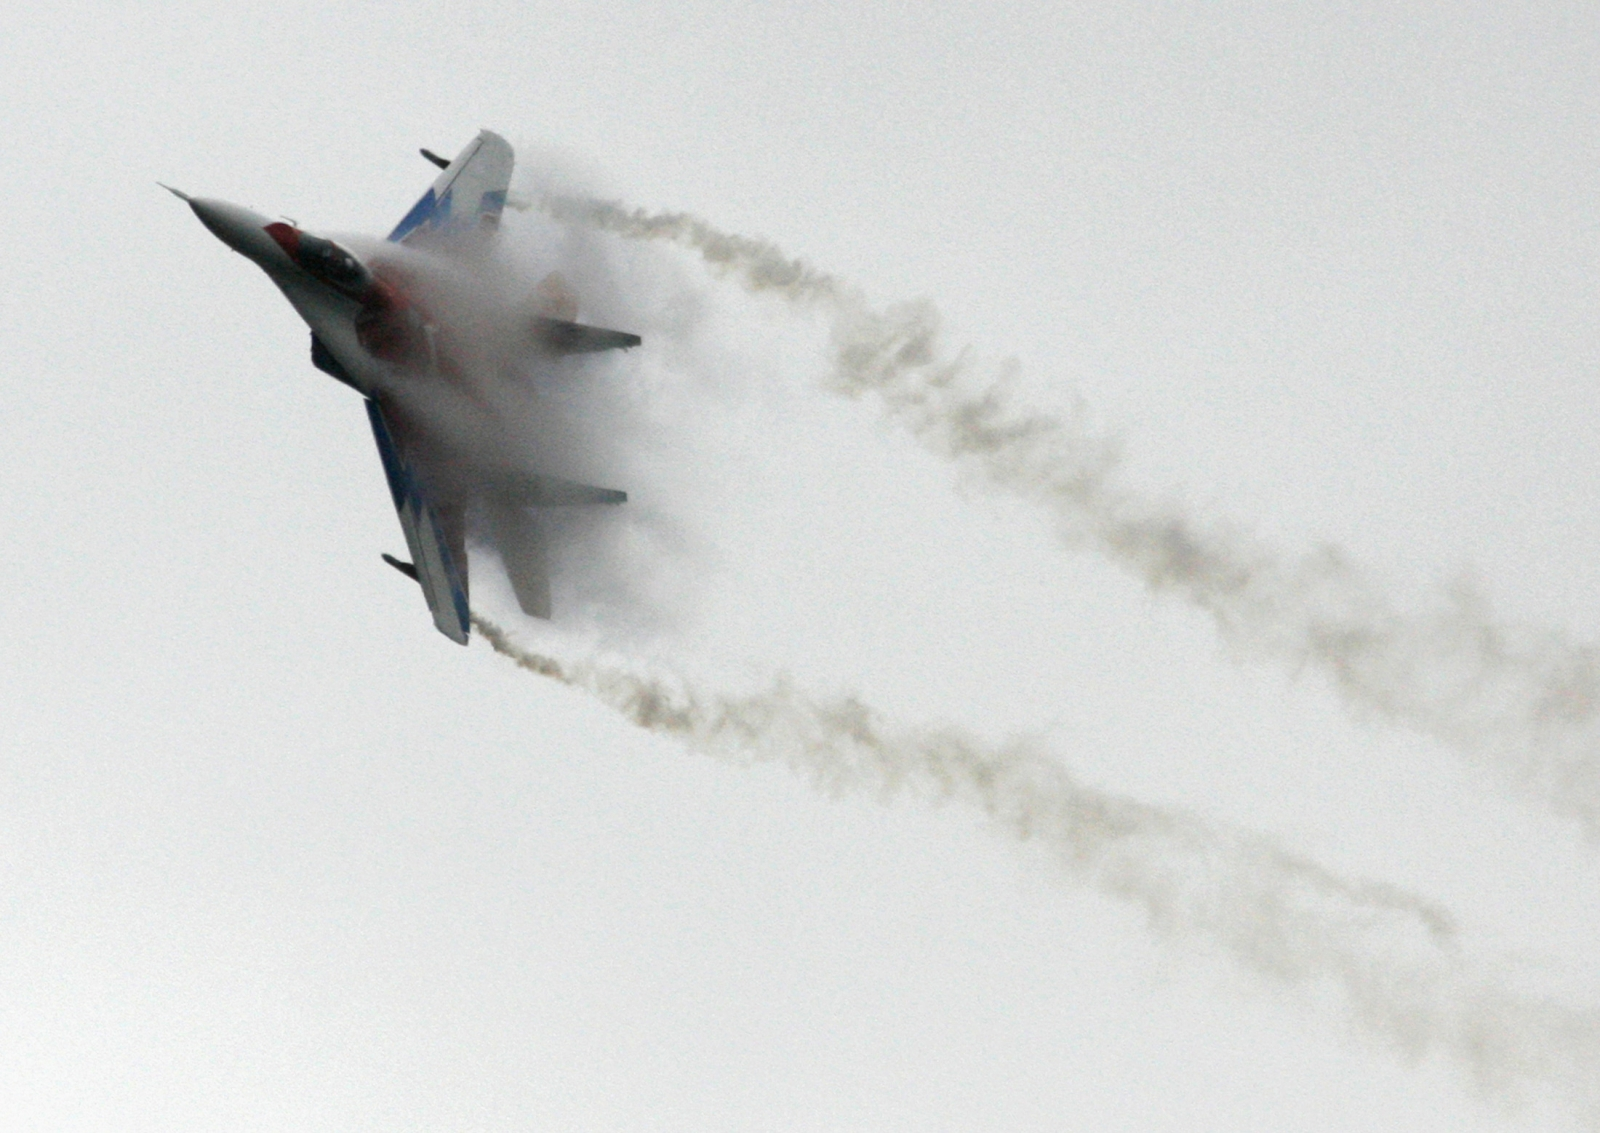 Ukraine rebels shoot down fighter jet